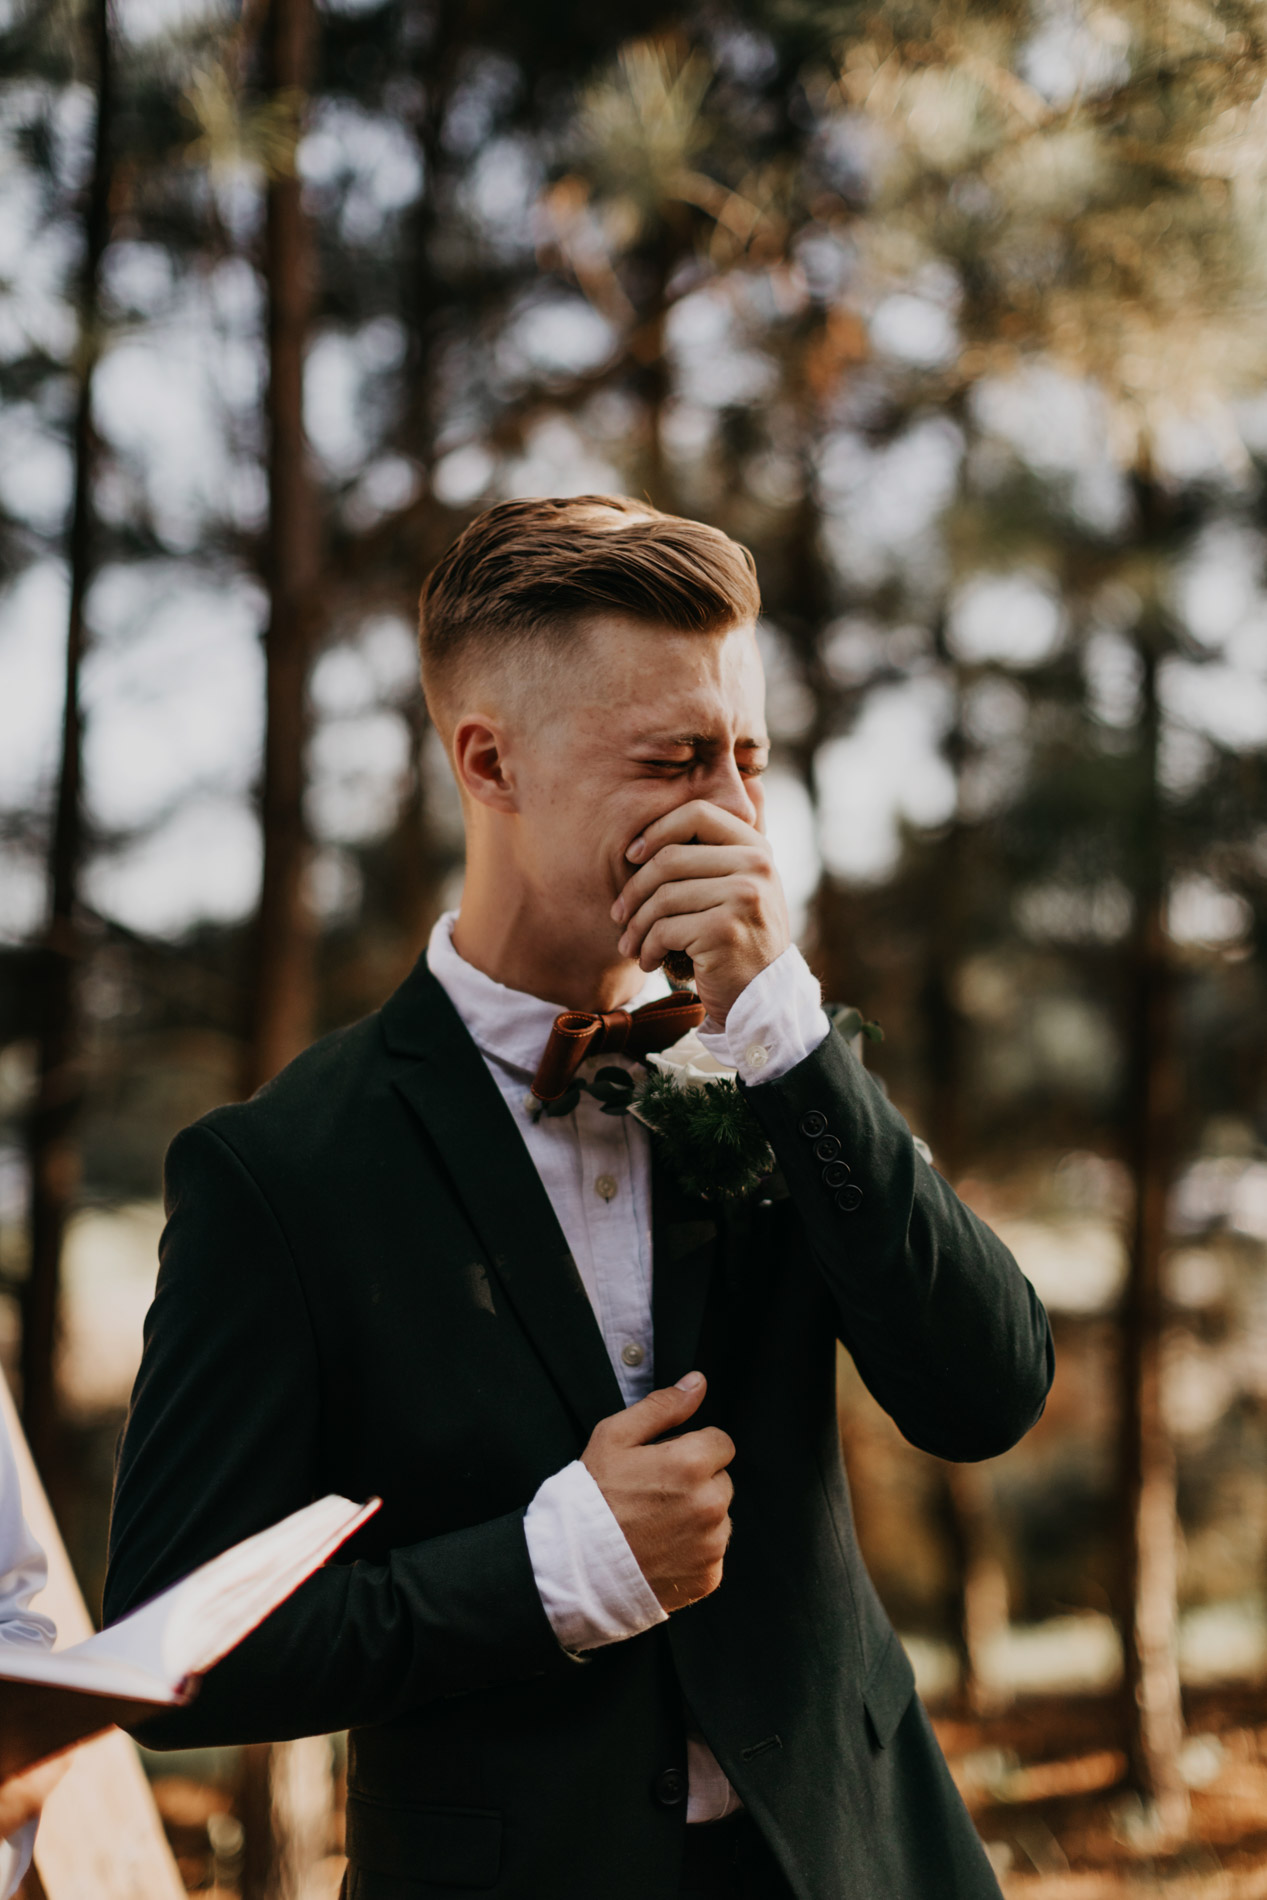 Groom seeing bride for first time walking down the aisle